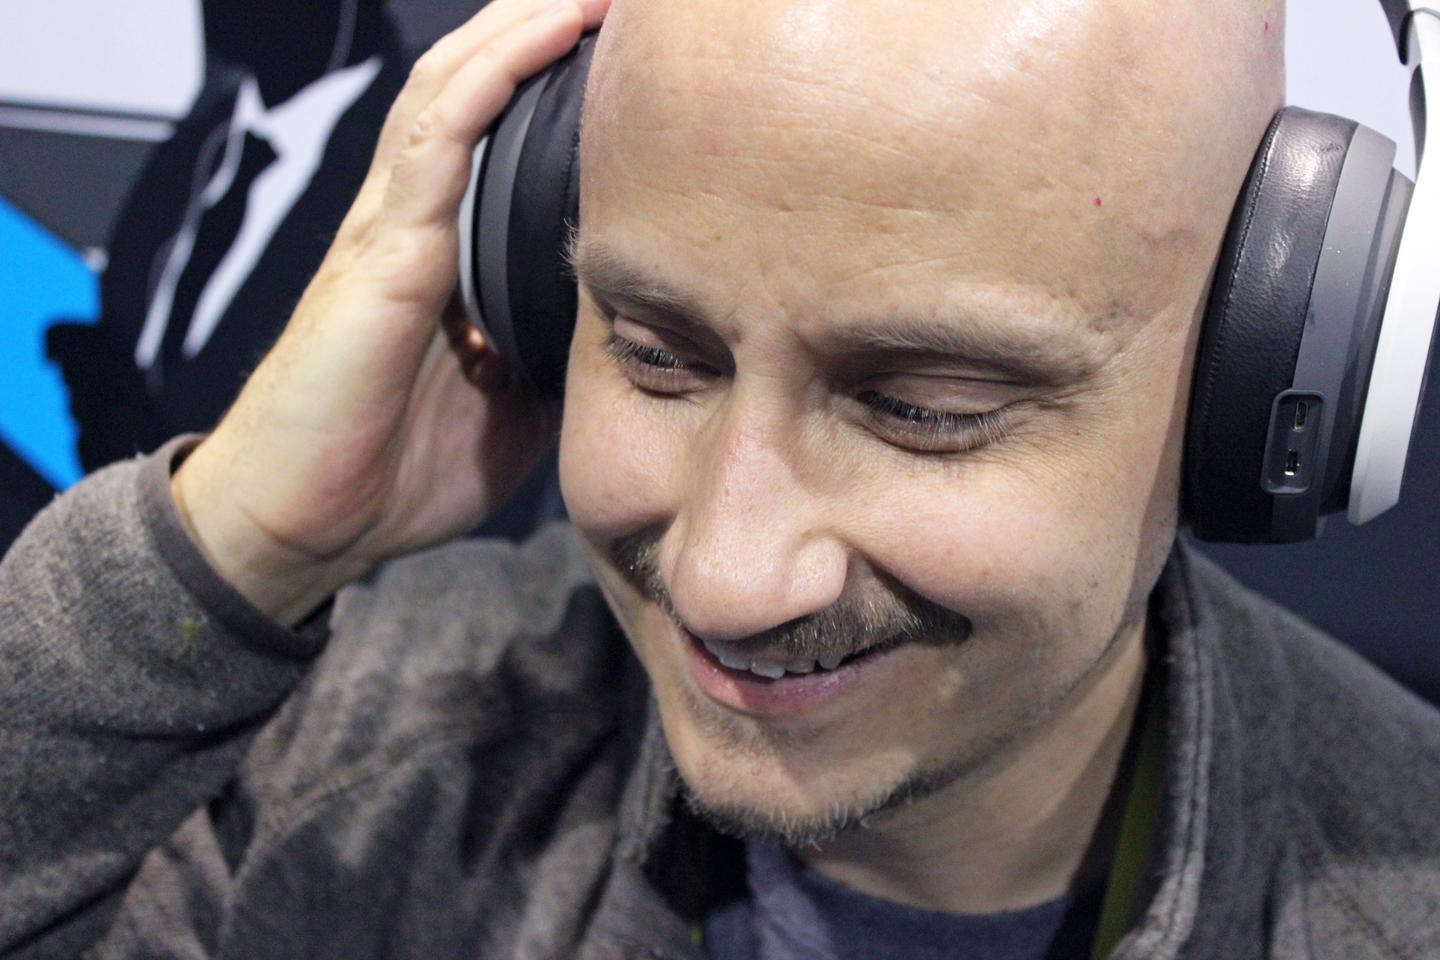 Though it's much larger than standard headphones, the Glyph can look a bit like a pair of cans when worn on your head (audio also sounds good) (Photo: Will Shanklin/Gizmag.com)